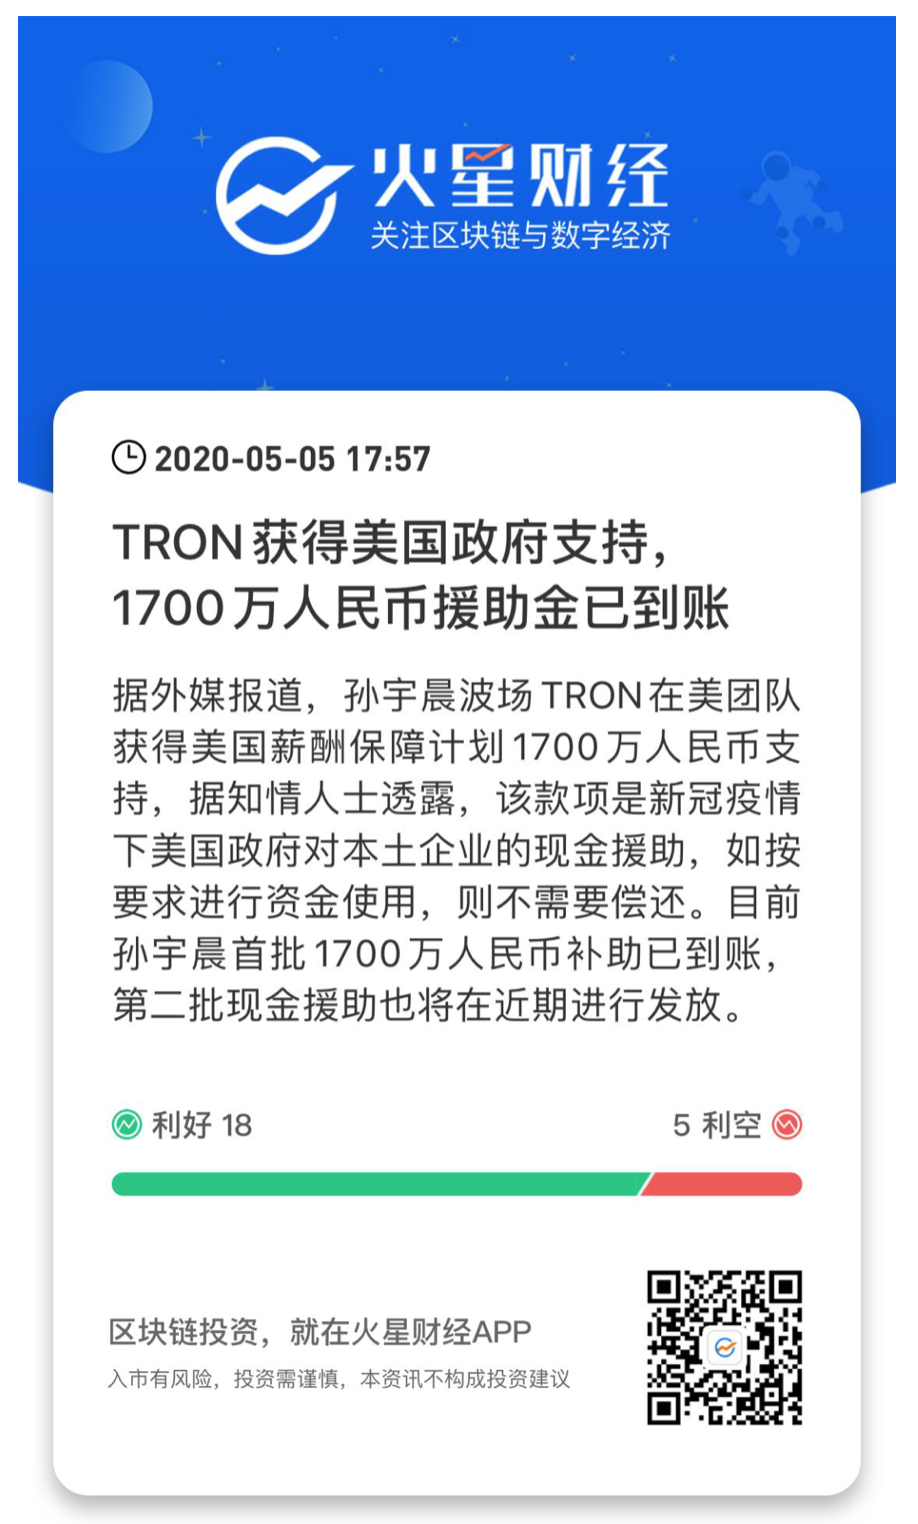 Screenshot of a purported WeChat post from a Beijing-based subsidiary